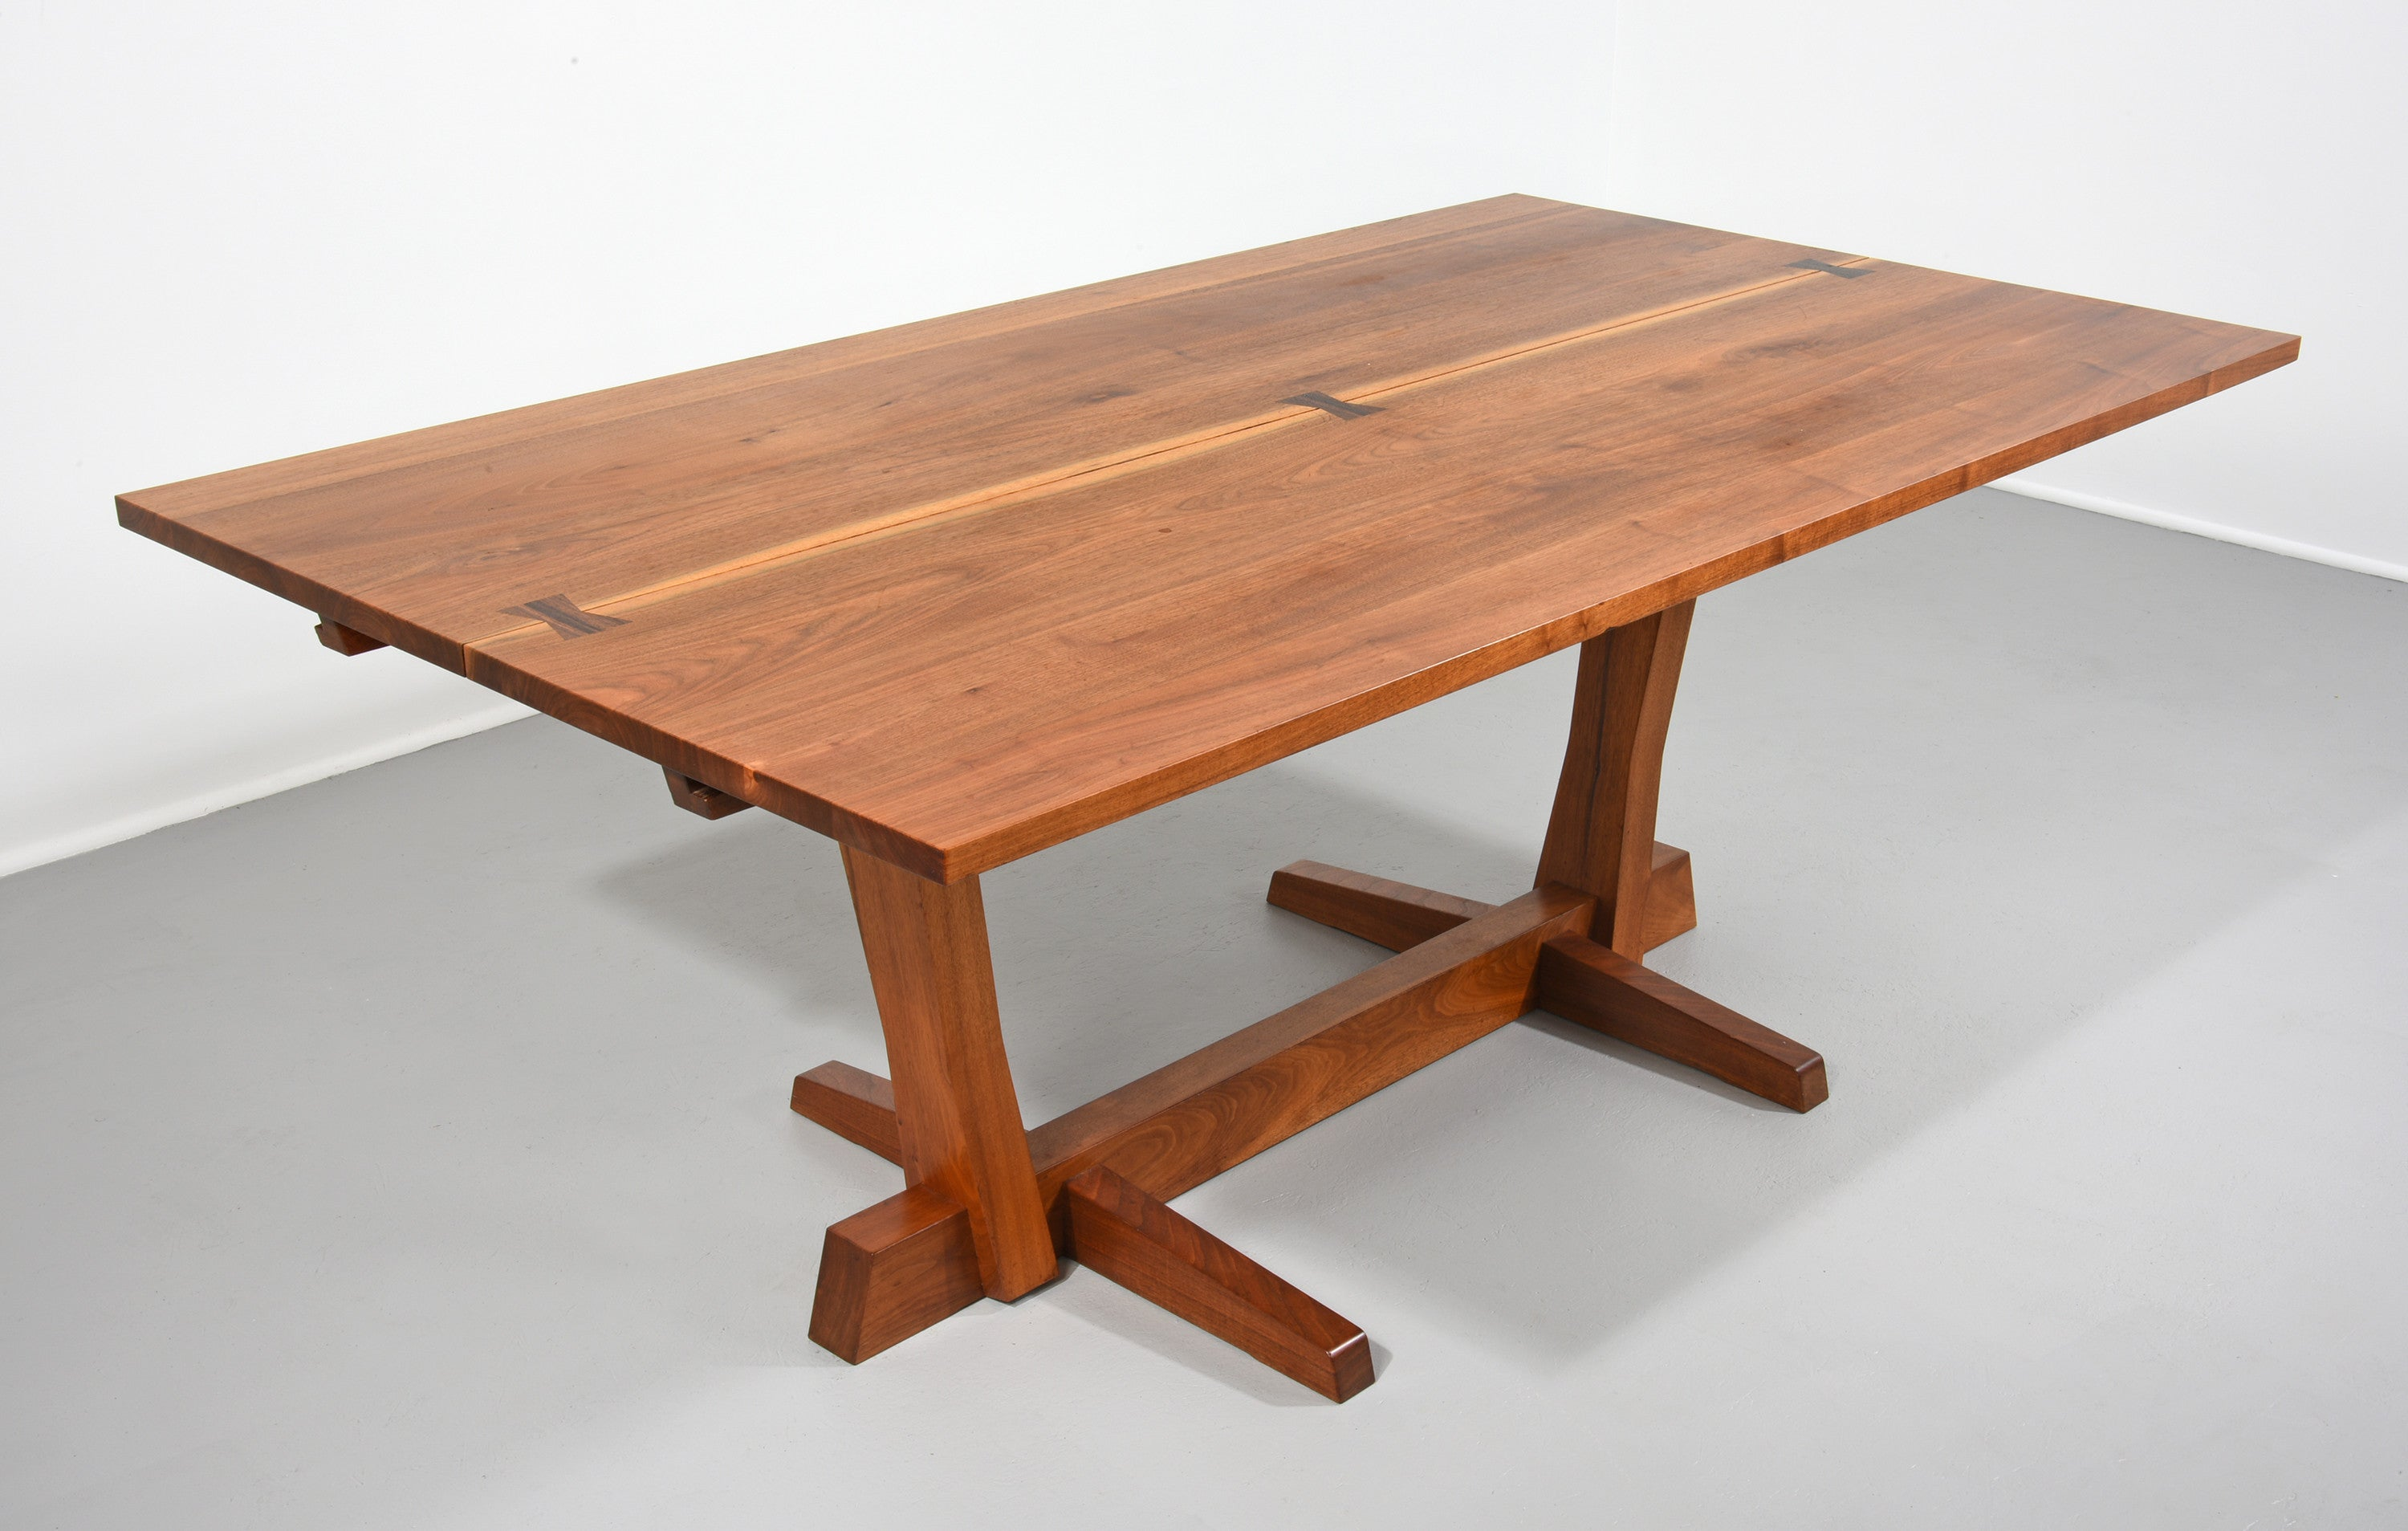 george nakashima conoid dining table in walnut and rosewood the